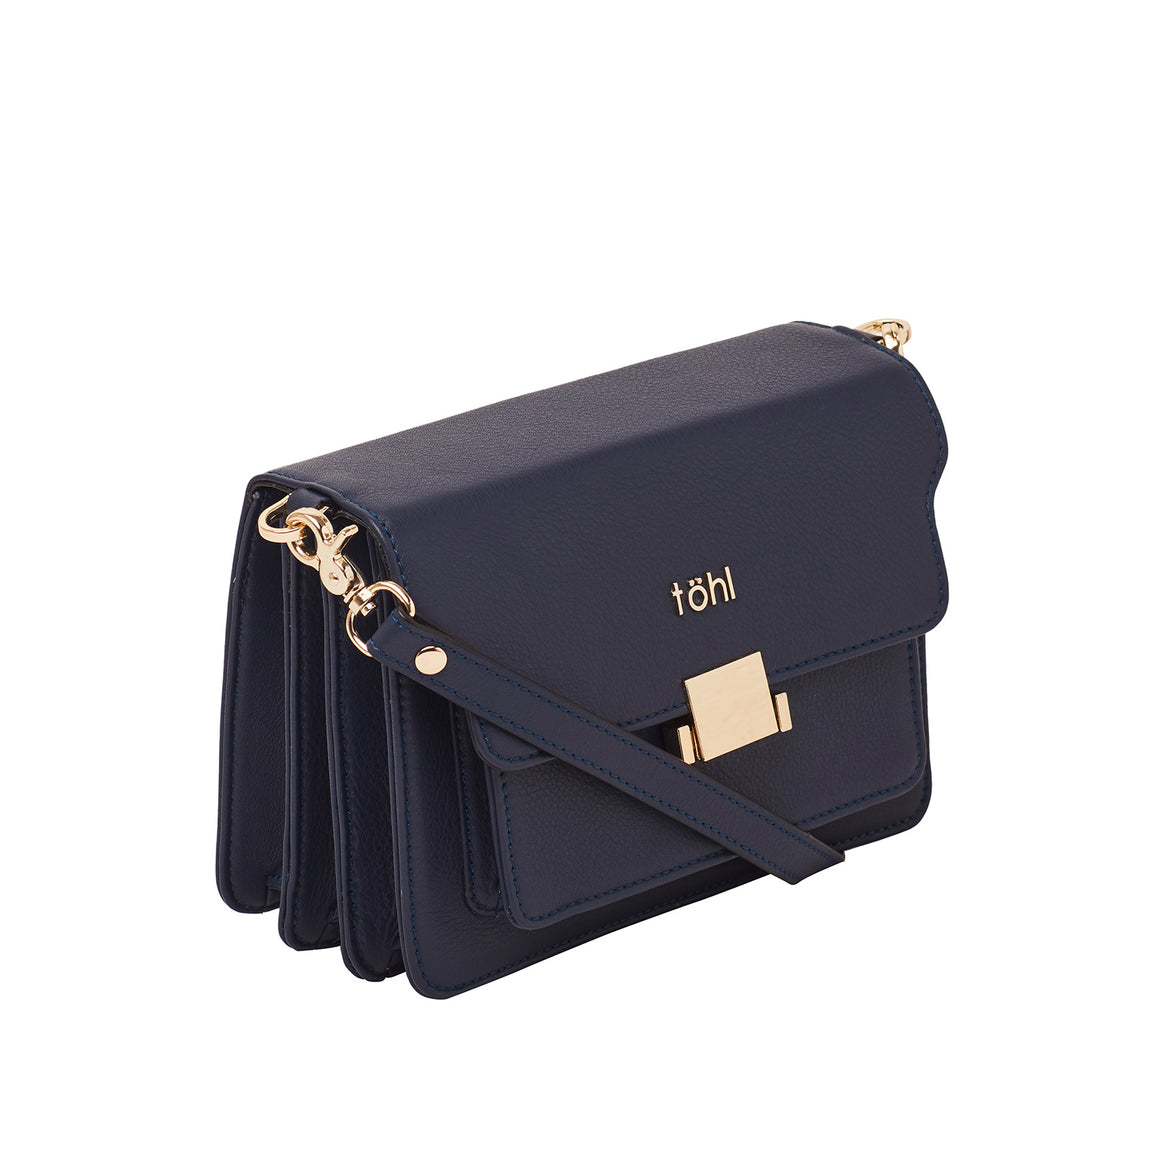 SG 0019 - TOHL CAMOMILE WOMEN'S SLING AND CROSSBODY - INDIGO BLUE